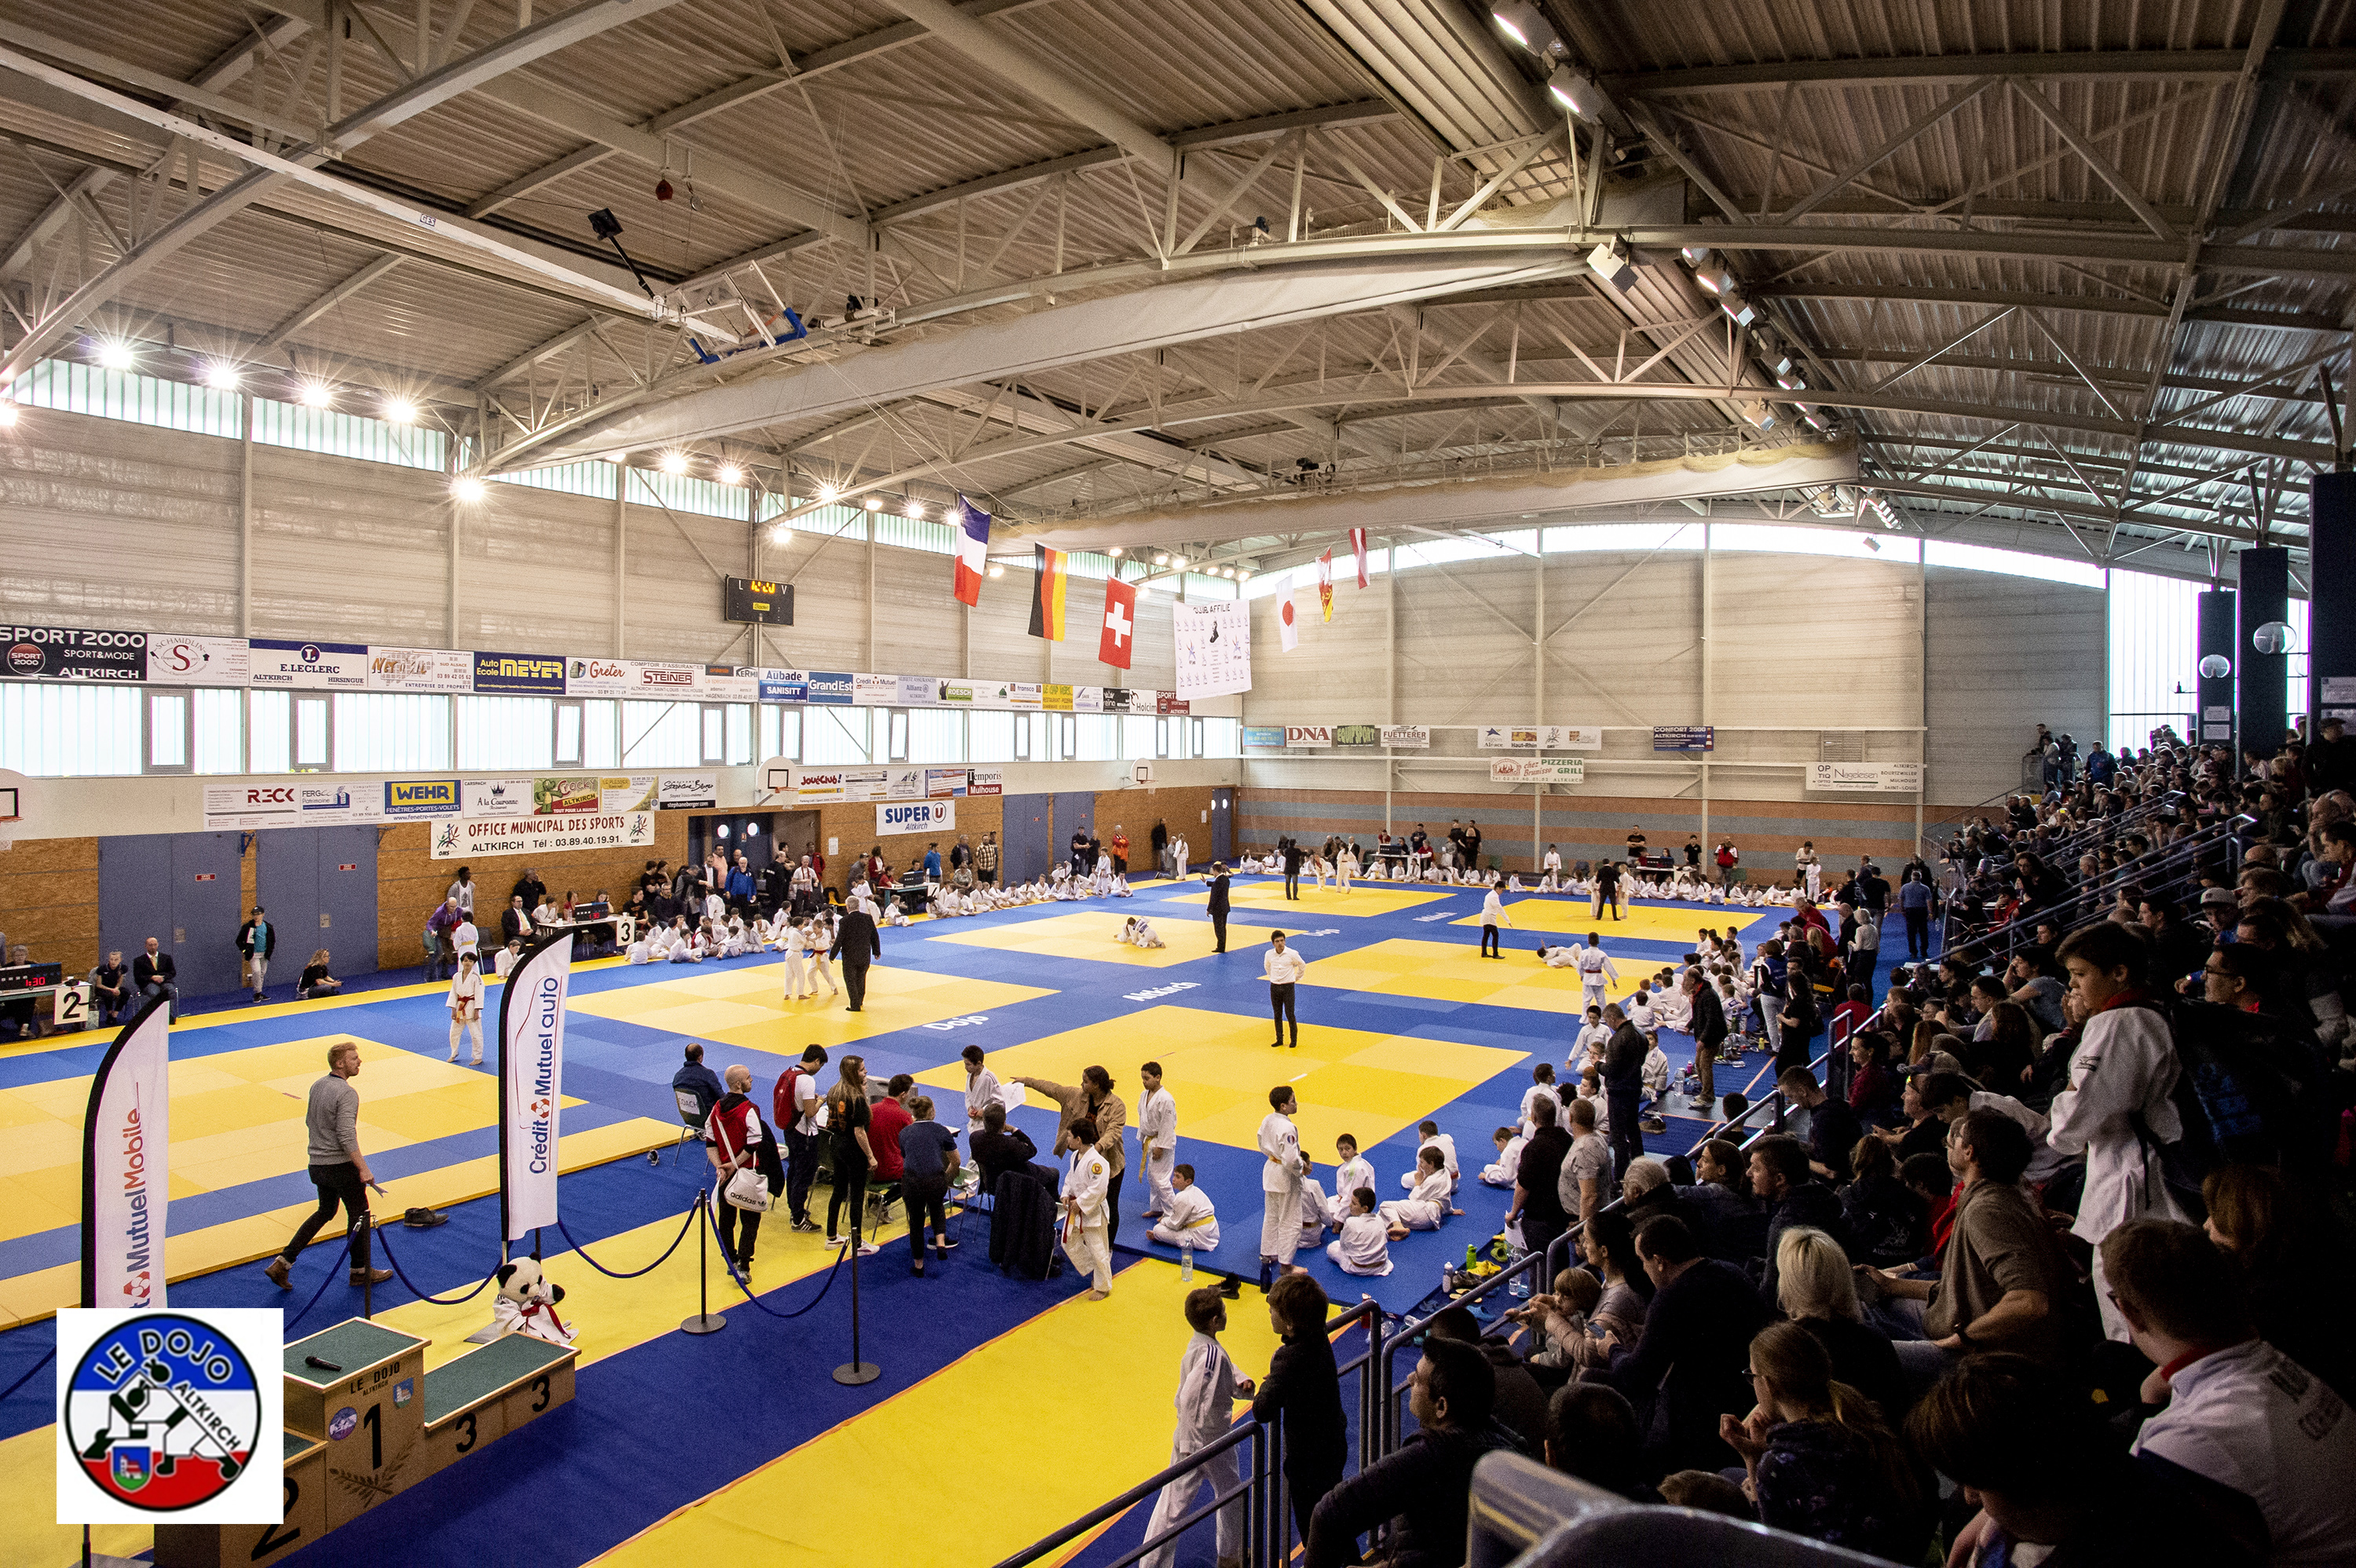 Tournoi international d'Altkirch 2019